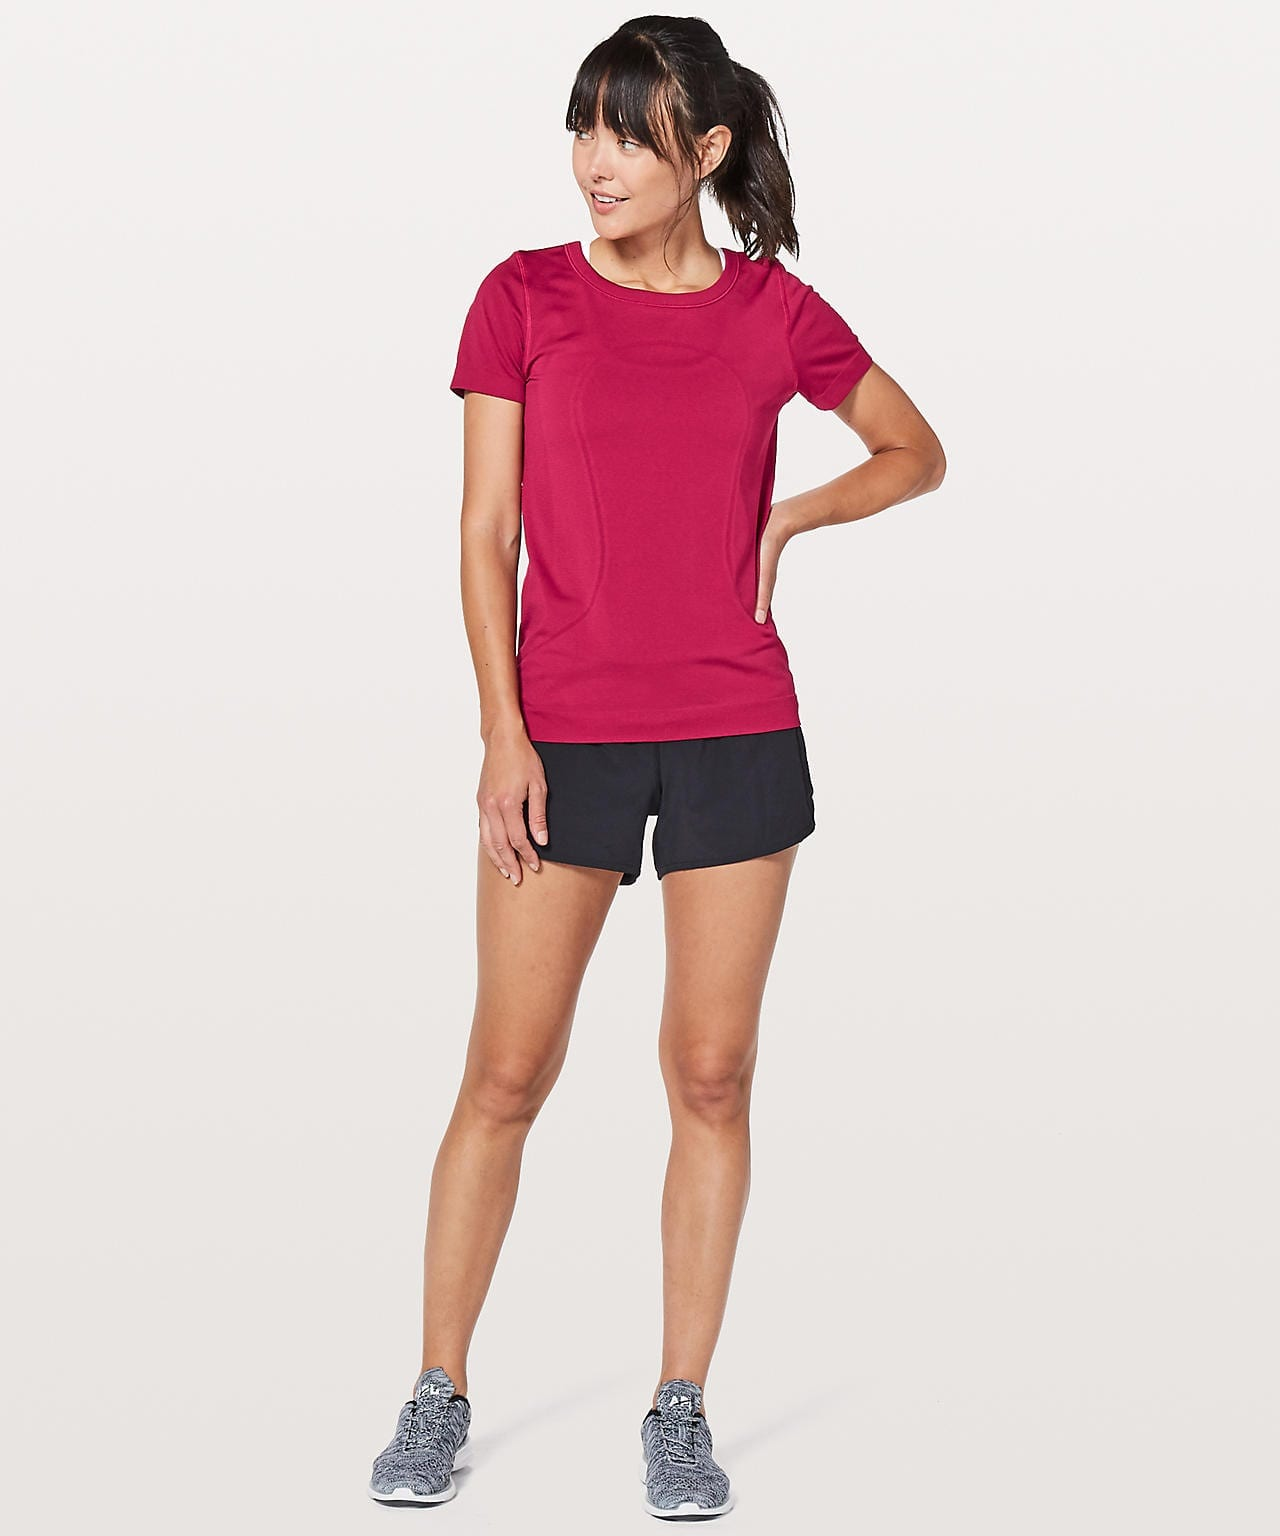 Swiftly Tech Short Sleeve (Breeze) Relaxed Fit